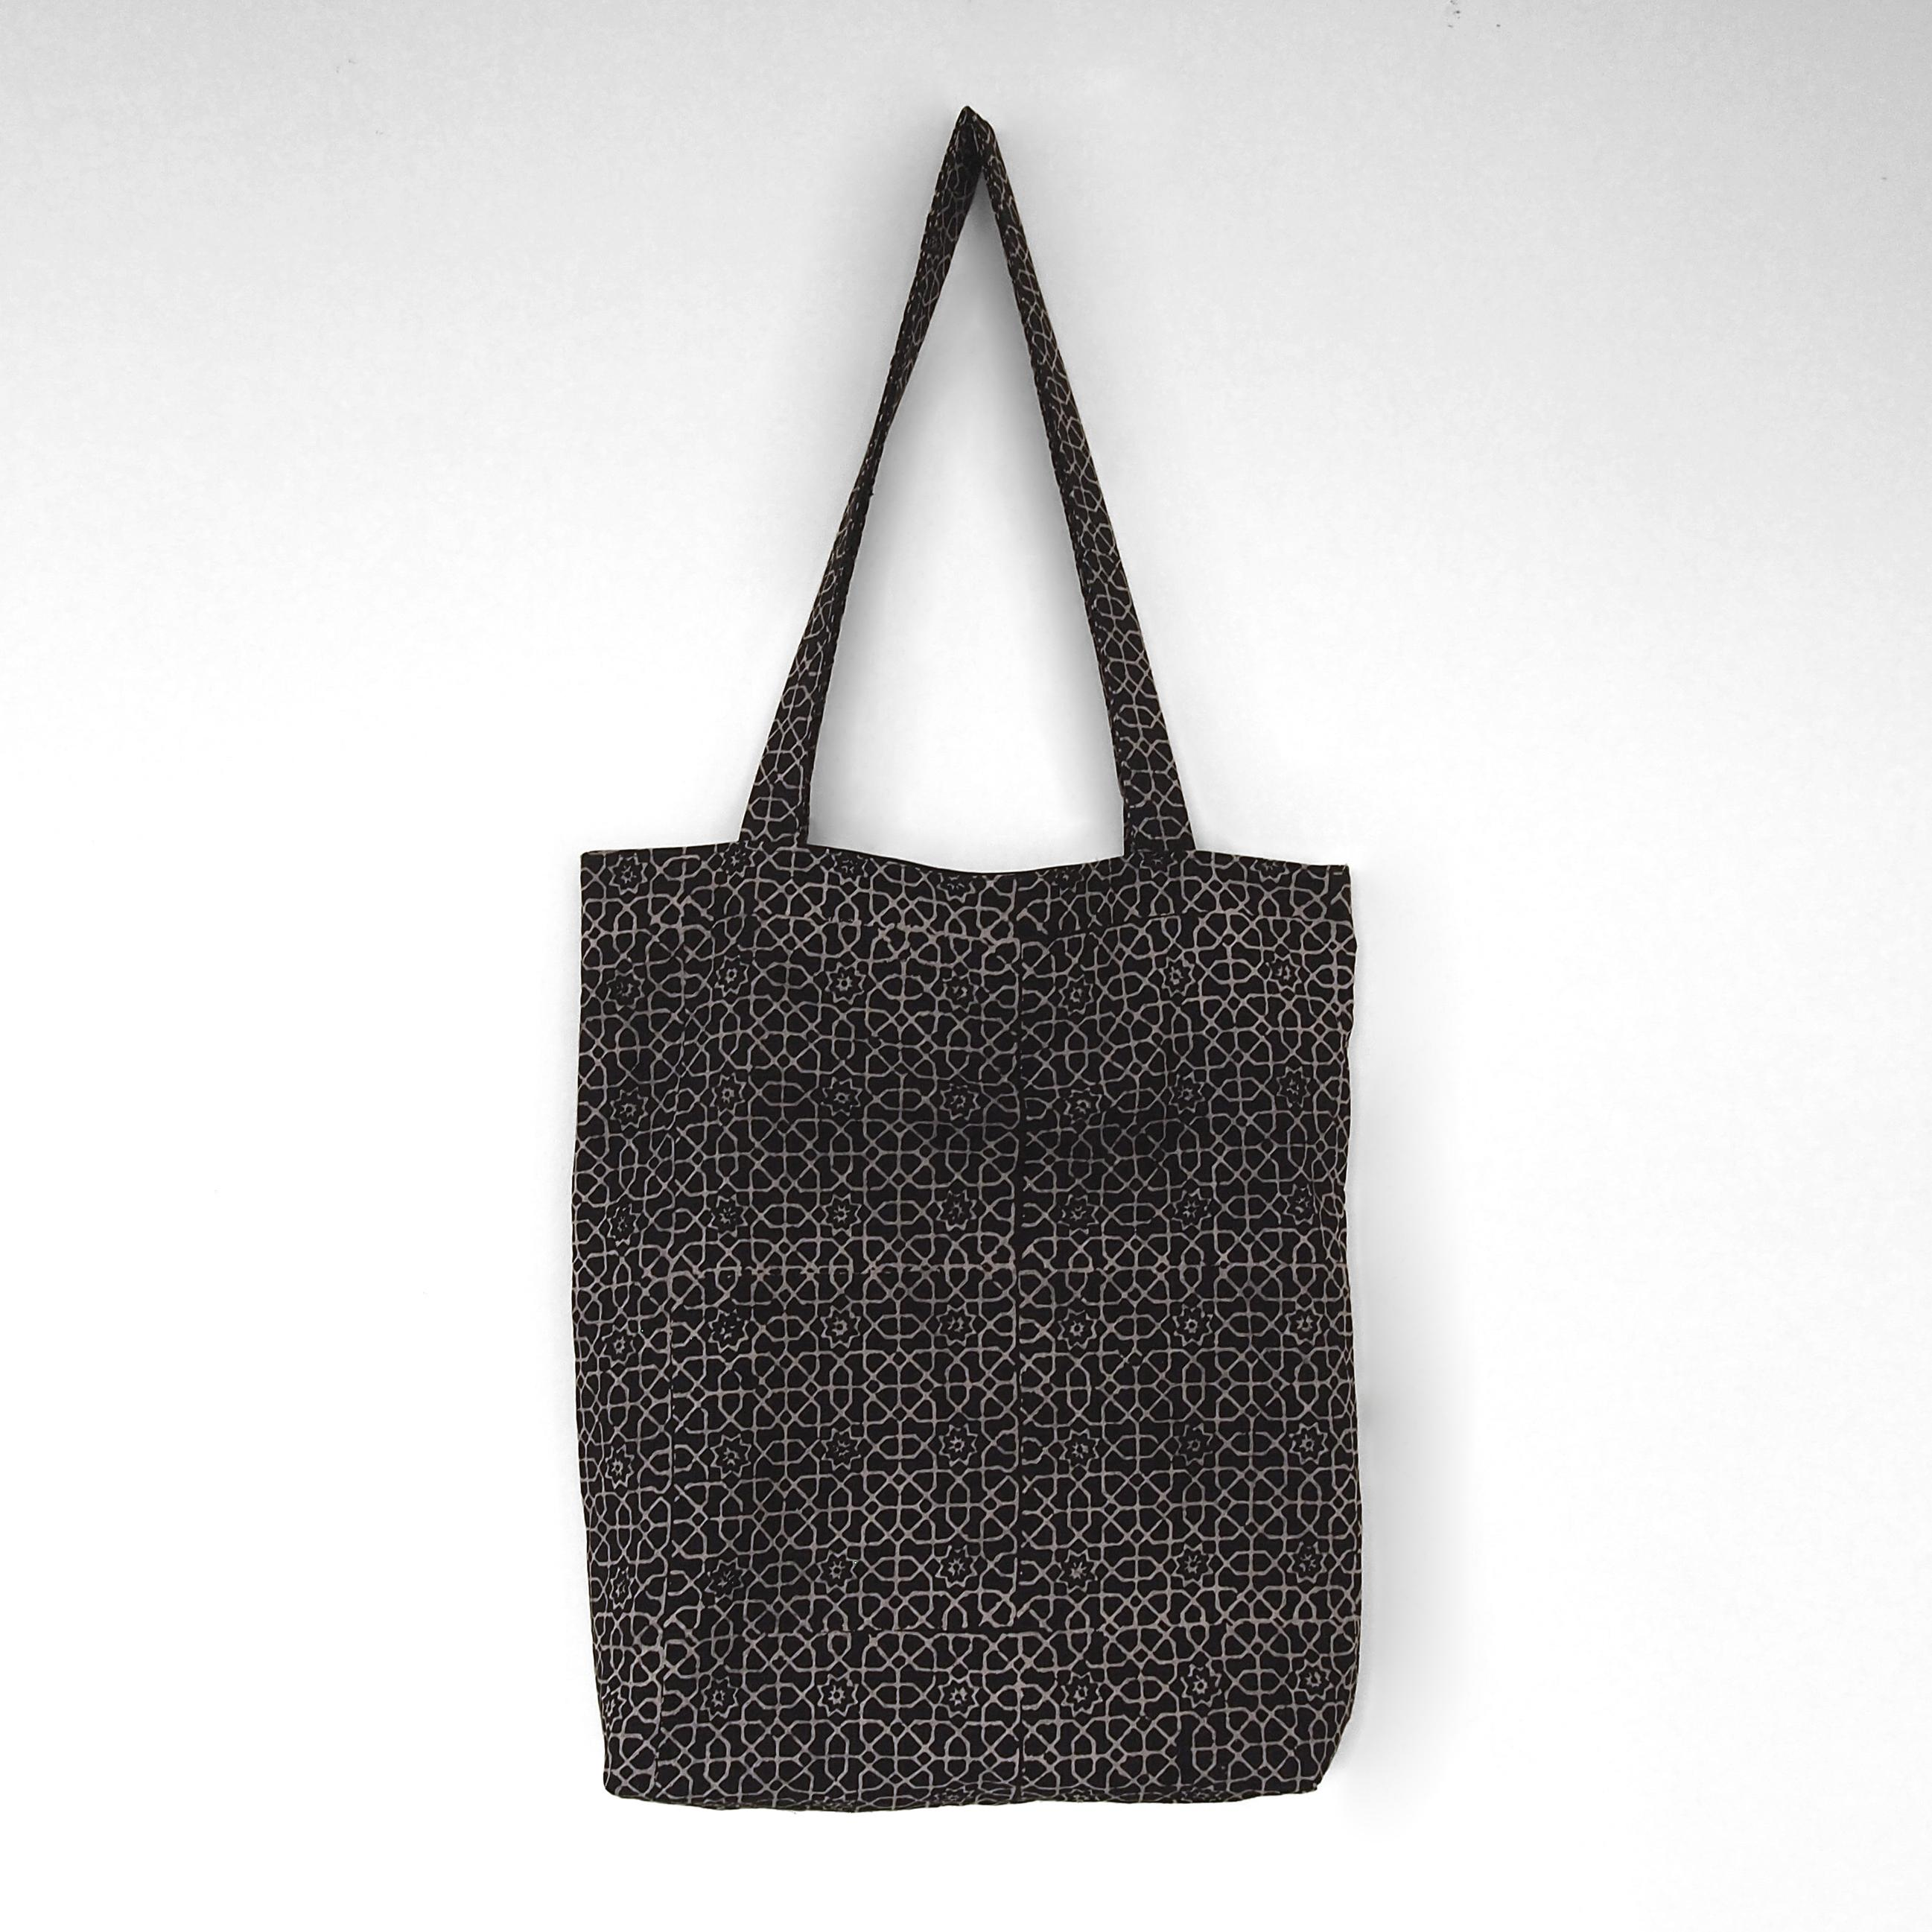 block printed cotton tote bag, natural dye, black, beige octagon design, lined with black cotton, closed